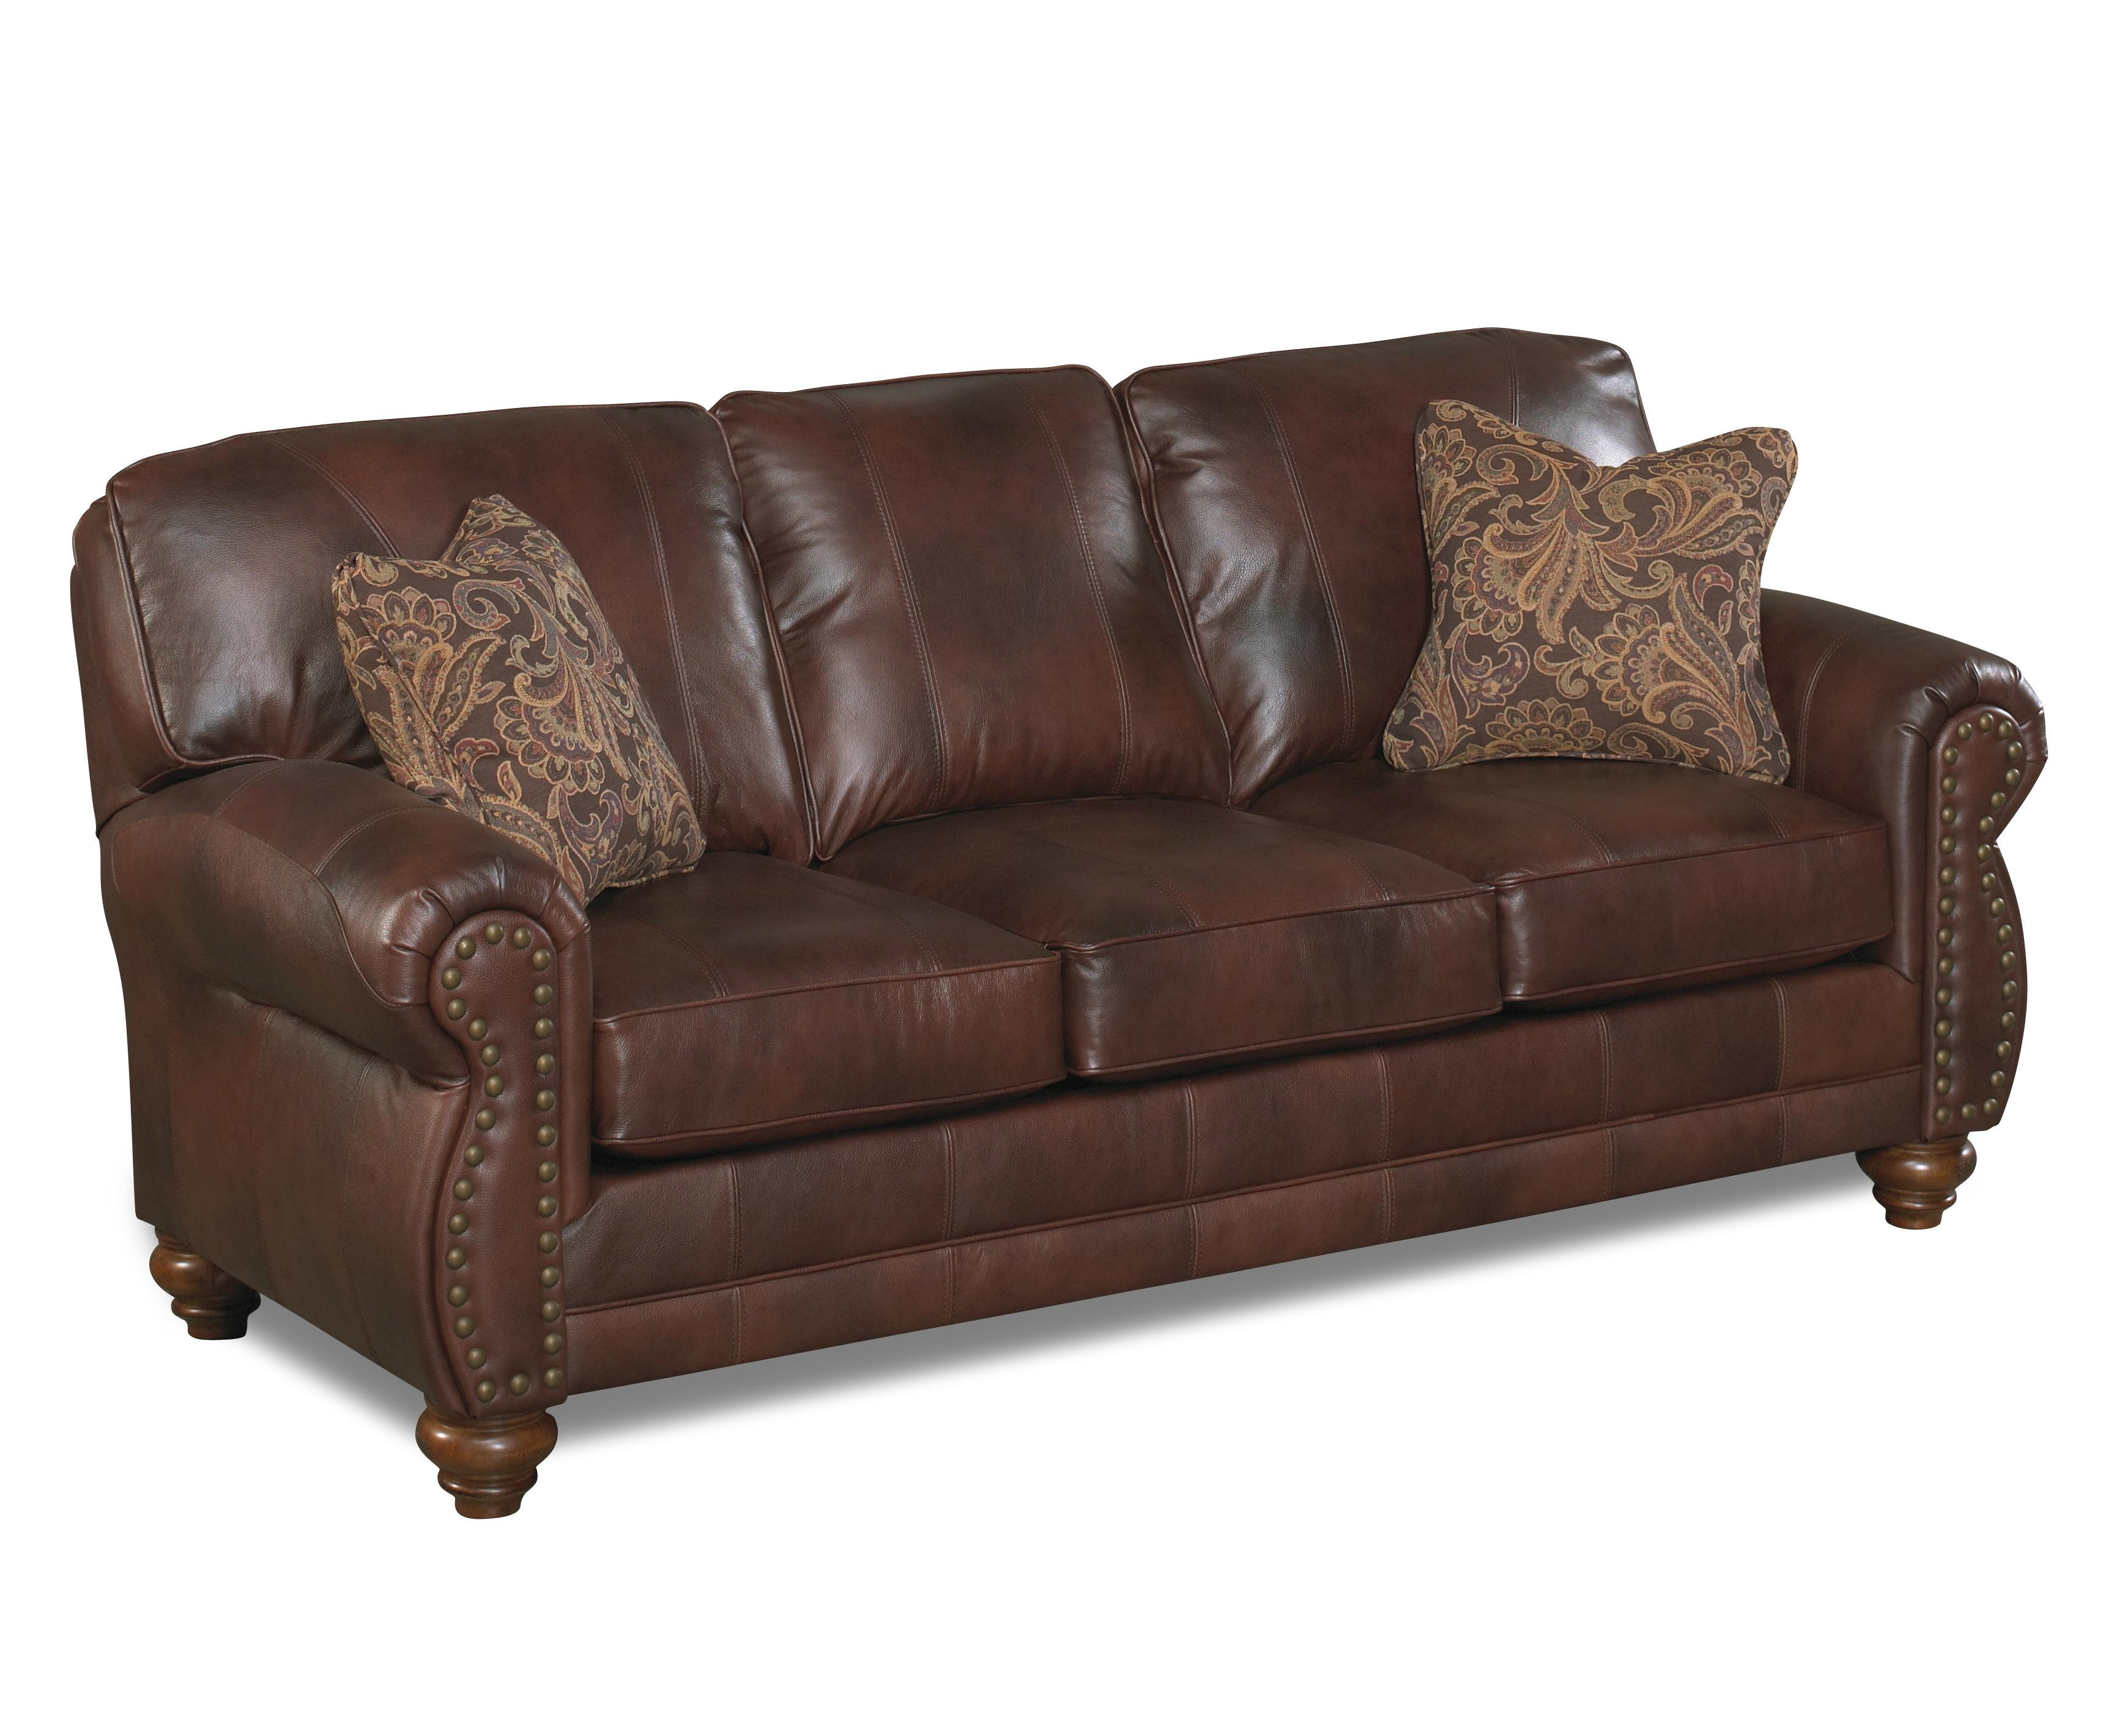 Best Home Furnishings Noble Stationary Sofa - Item Number: S64DPL